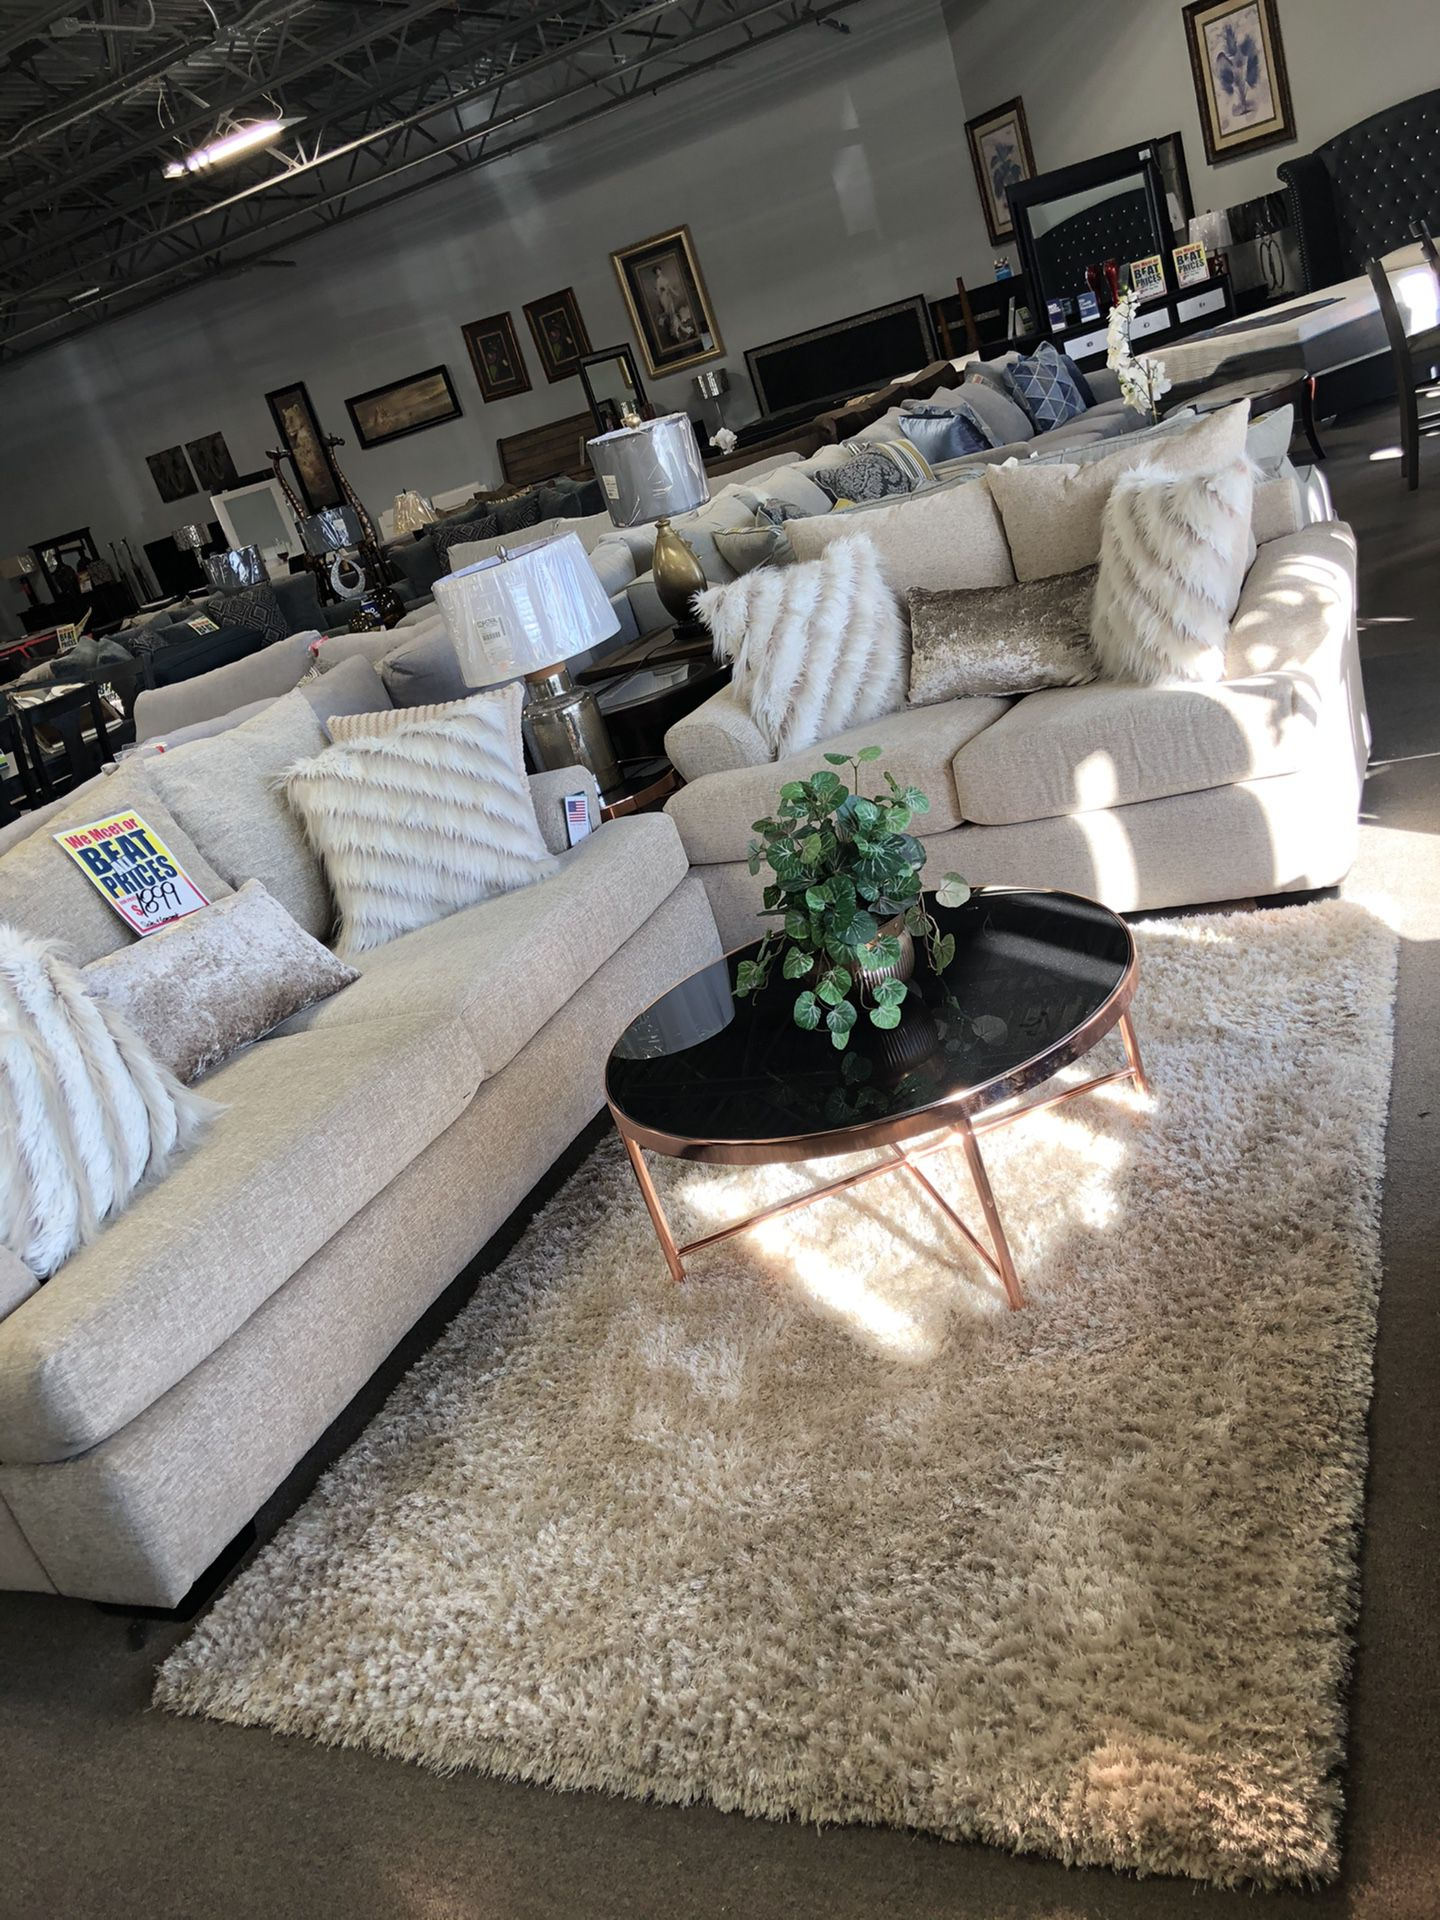 GORGEOUS SOFA AND LOVESEAT 😍‼️‼️ Easy Financing! $27 DOWN . 90 Days Same As Cash ! NO CREDIT NEEDED🙌🙏🙏🥂